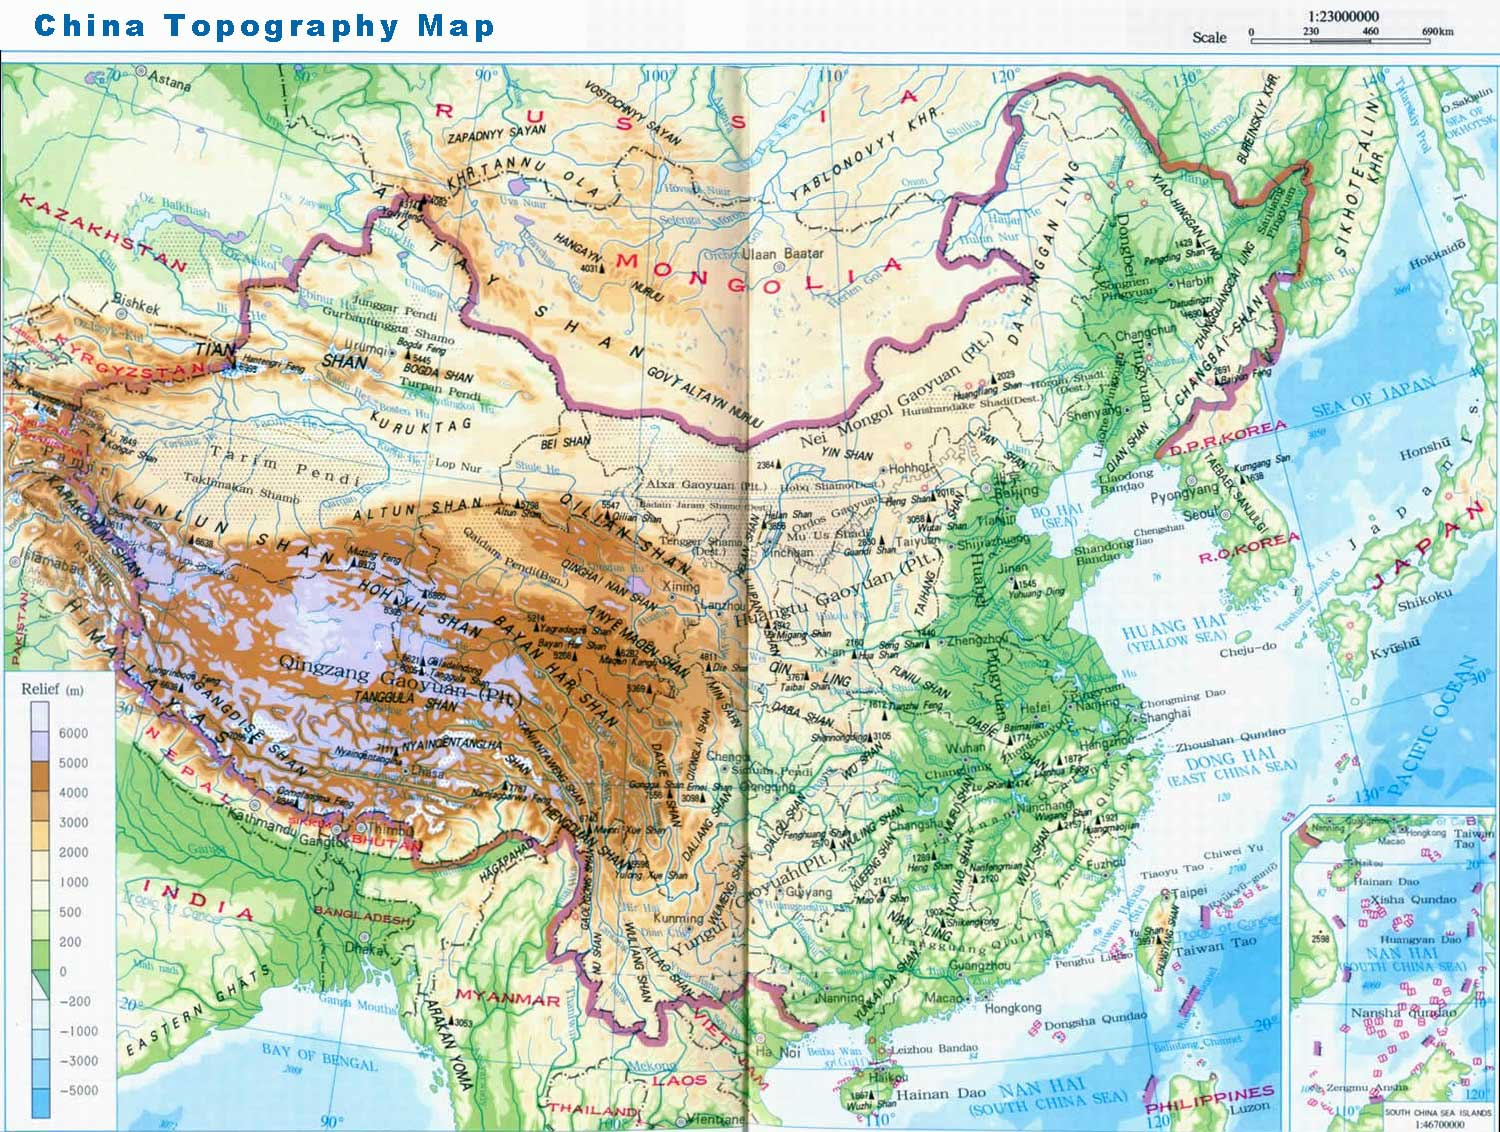 China Topography Map China Tour Background Information